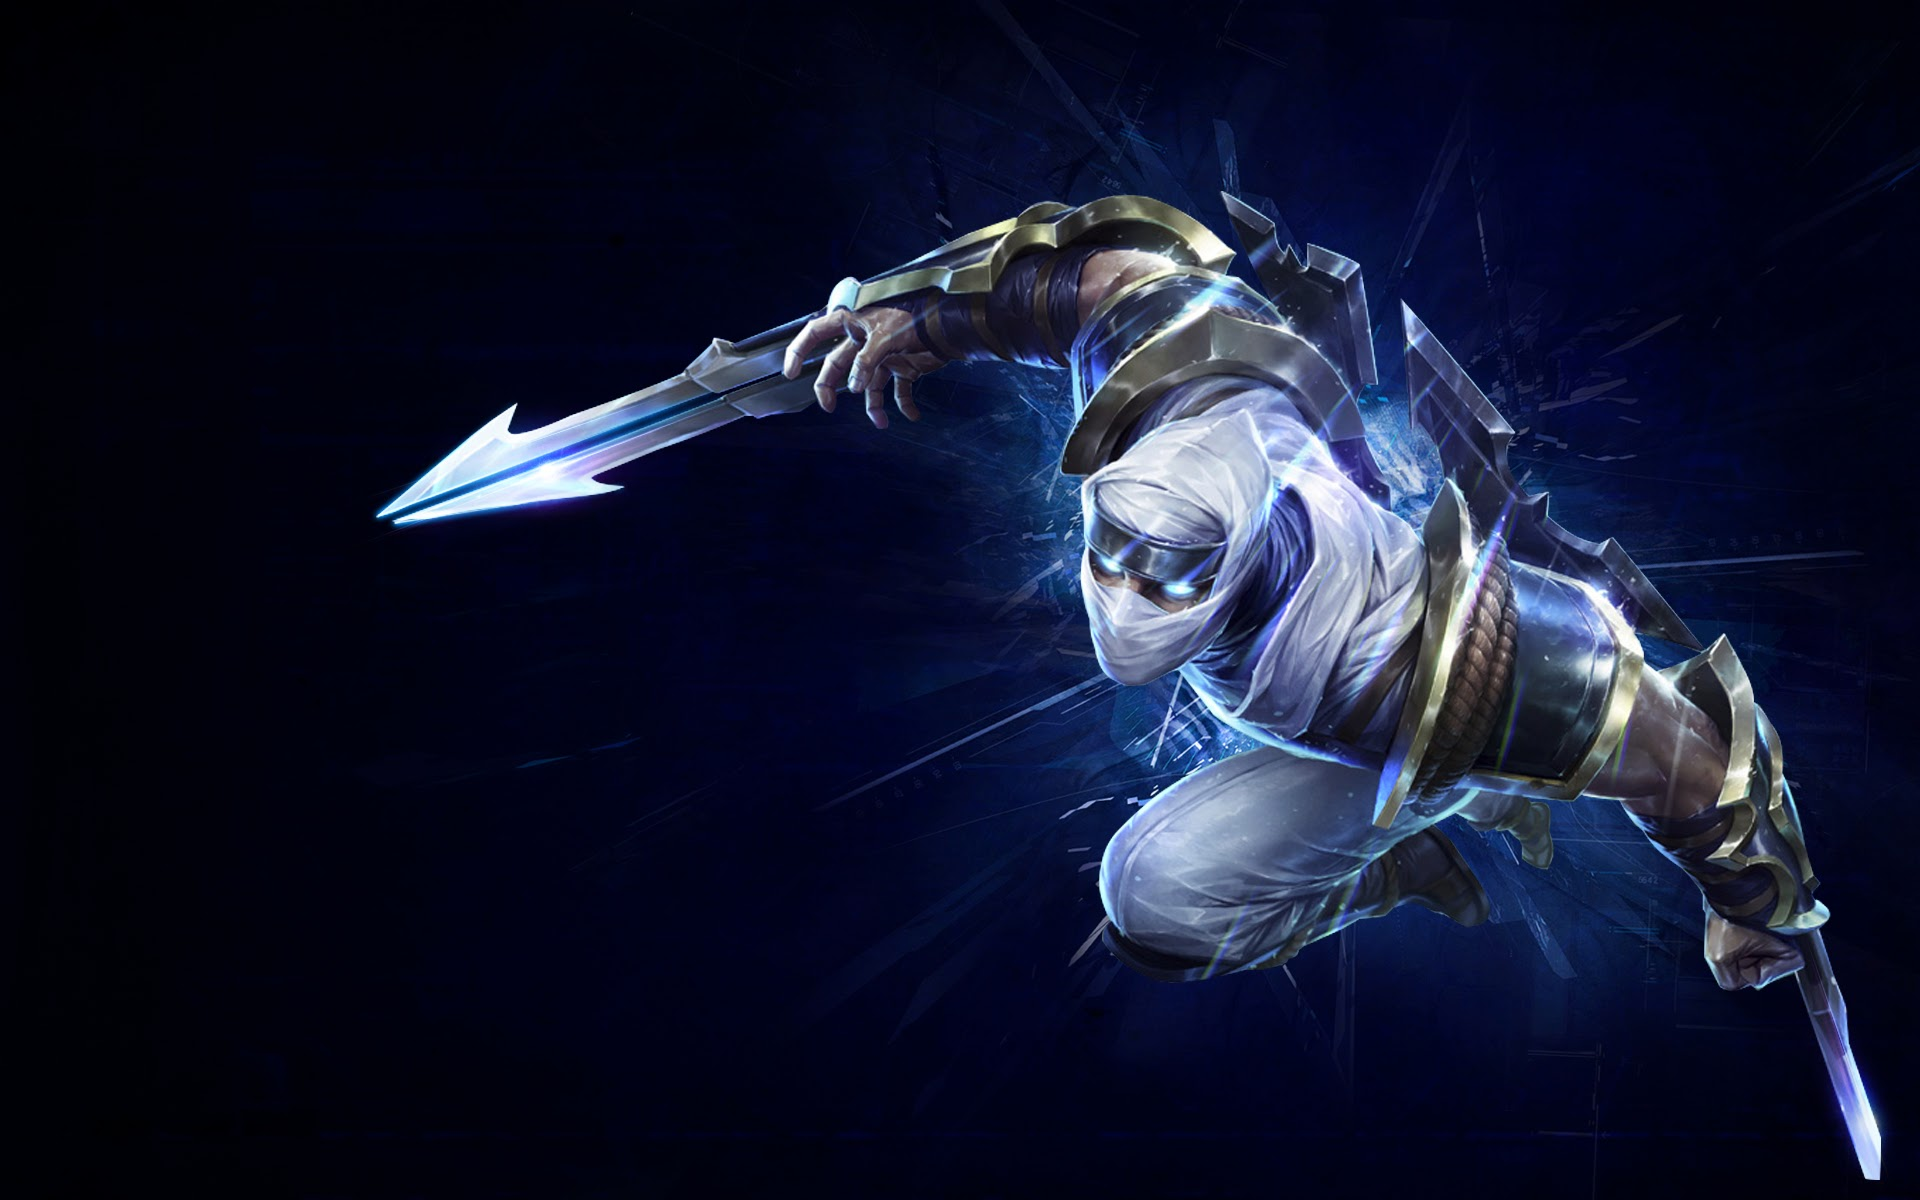 shockblade zed skin league of legends lol champion hd wallpaper ...